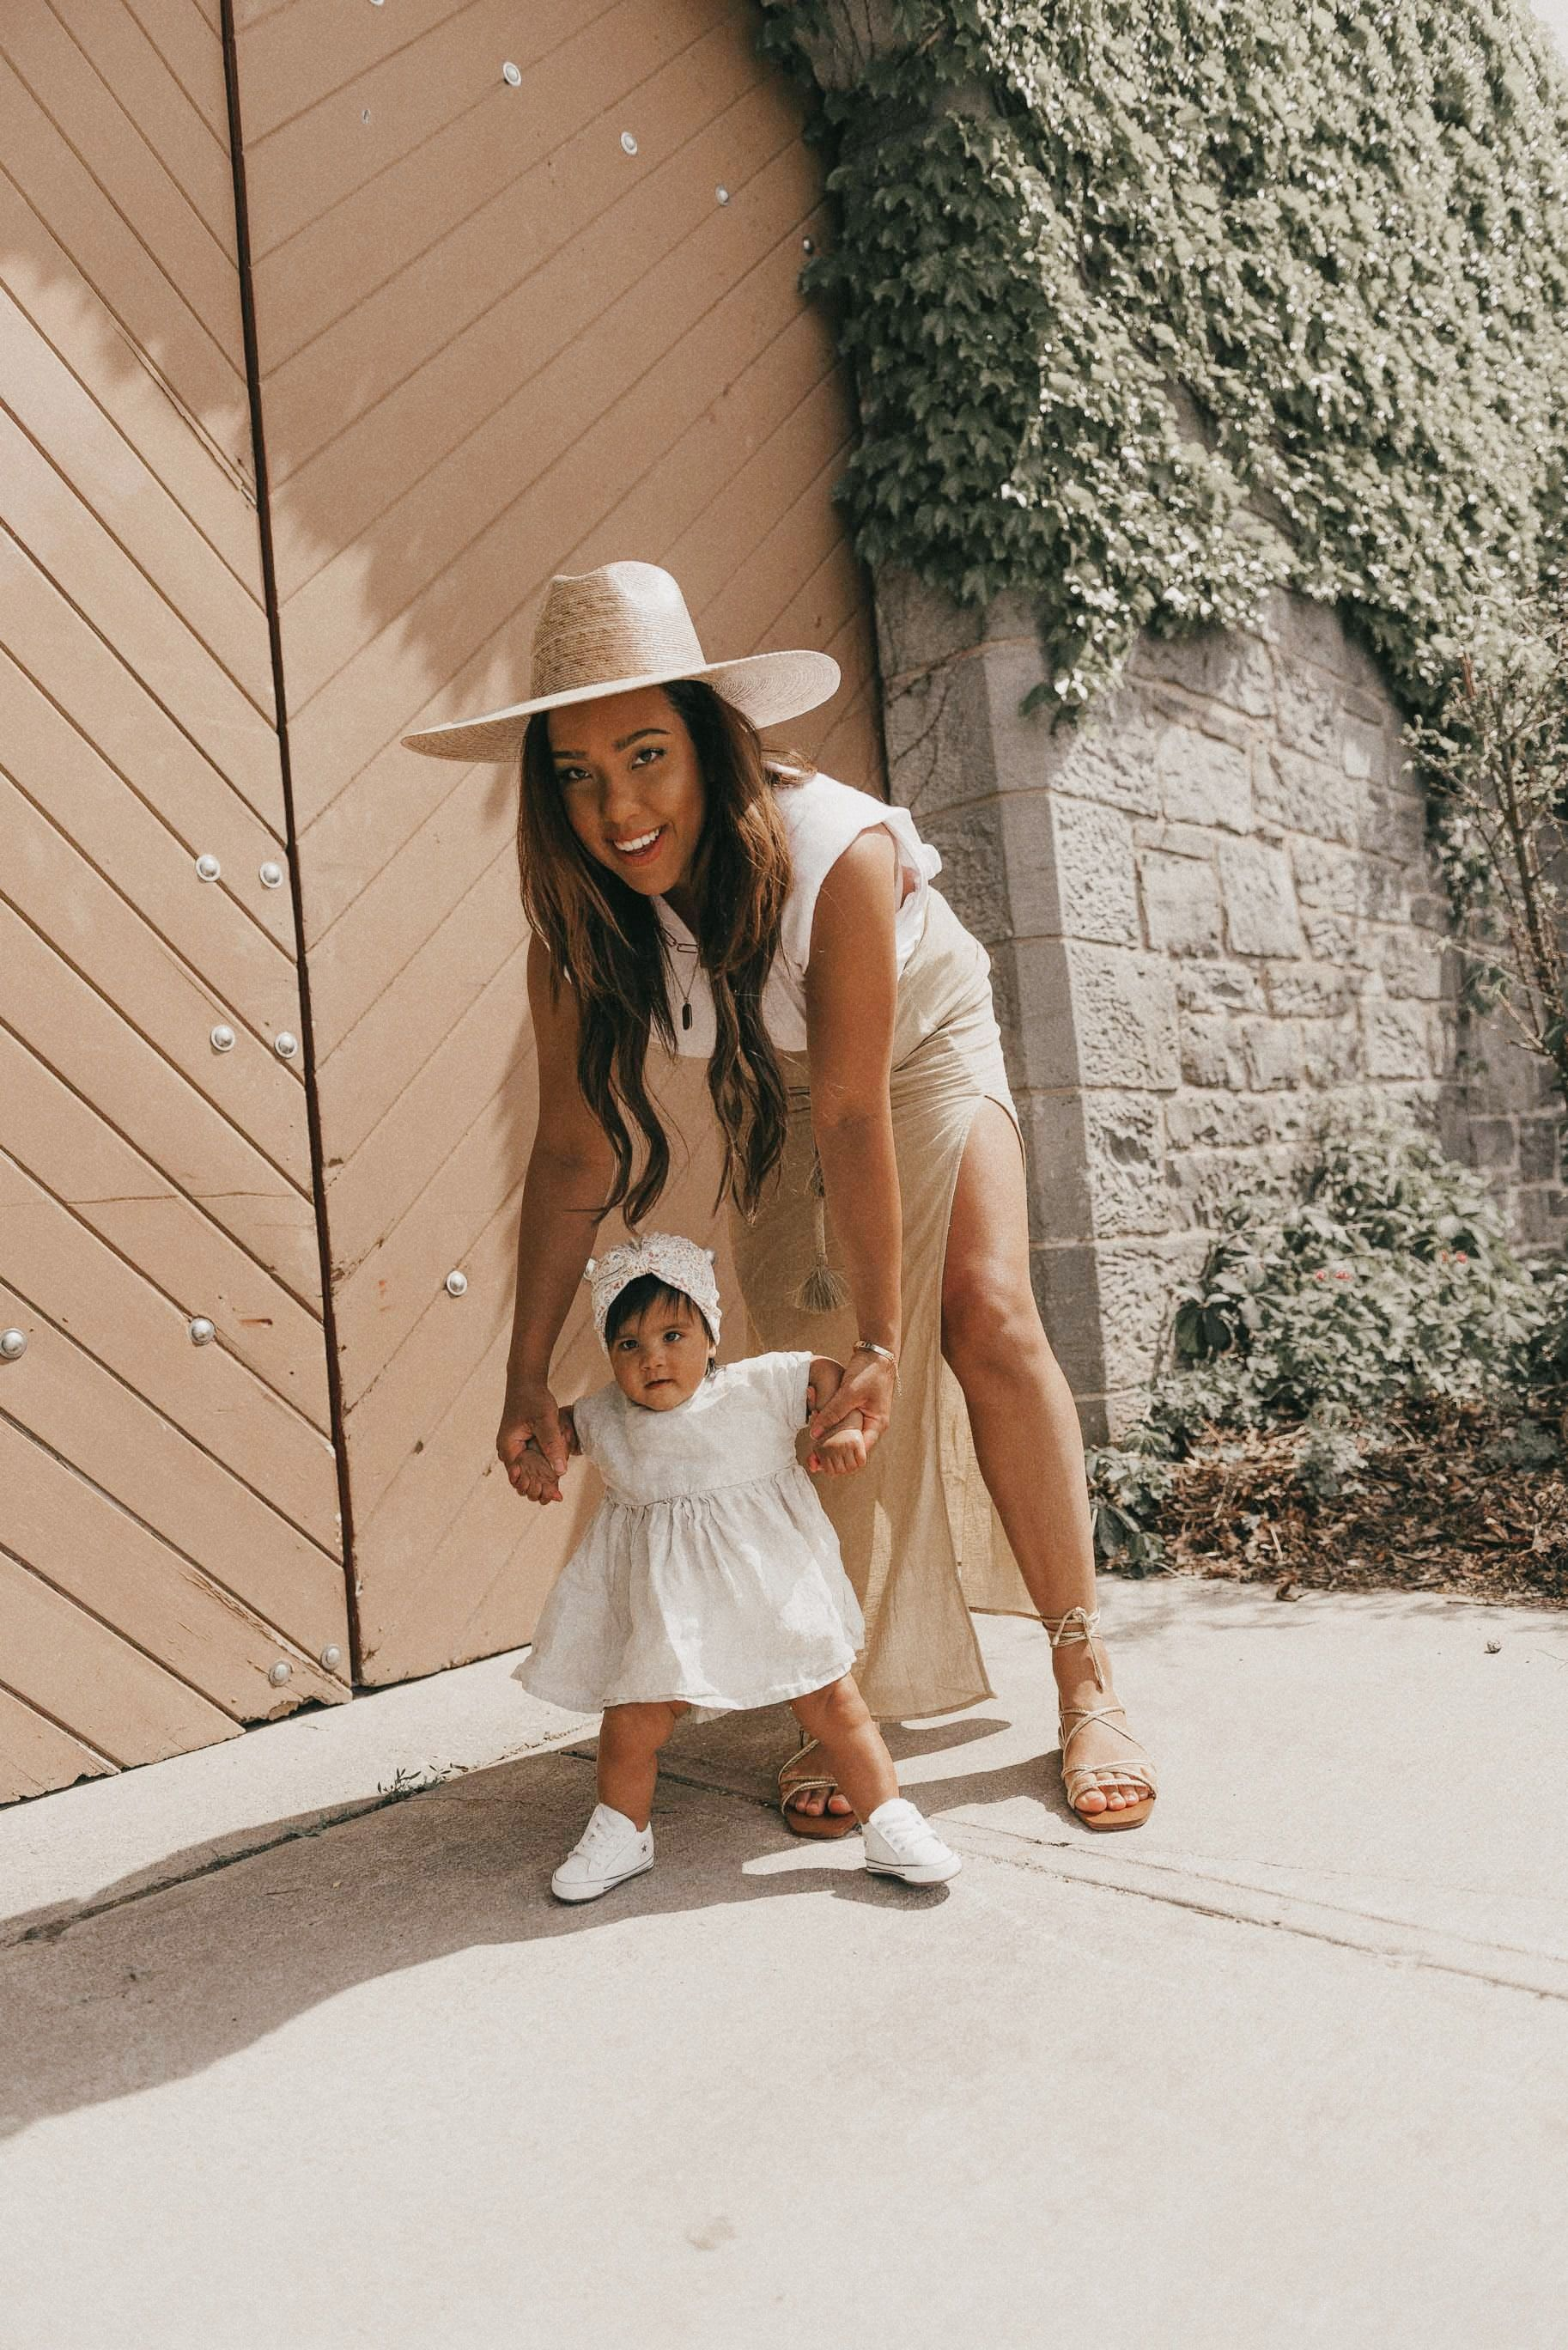 9 Things I Wish I Knew About Motherhood 9 Months Ago!